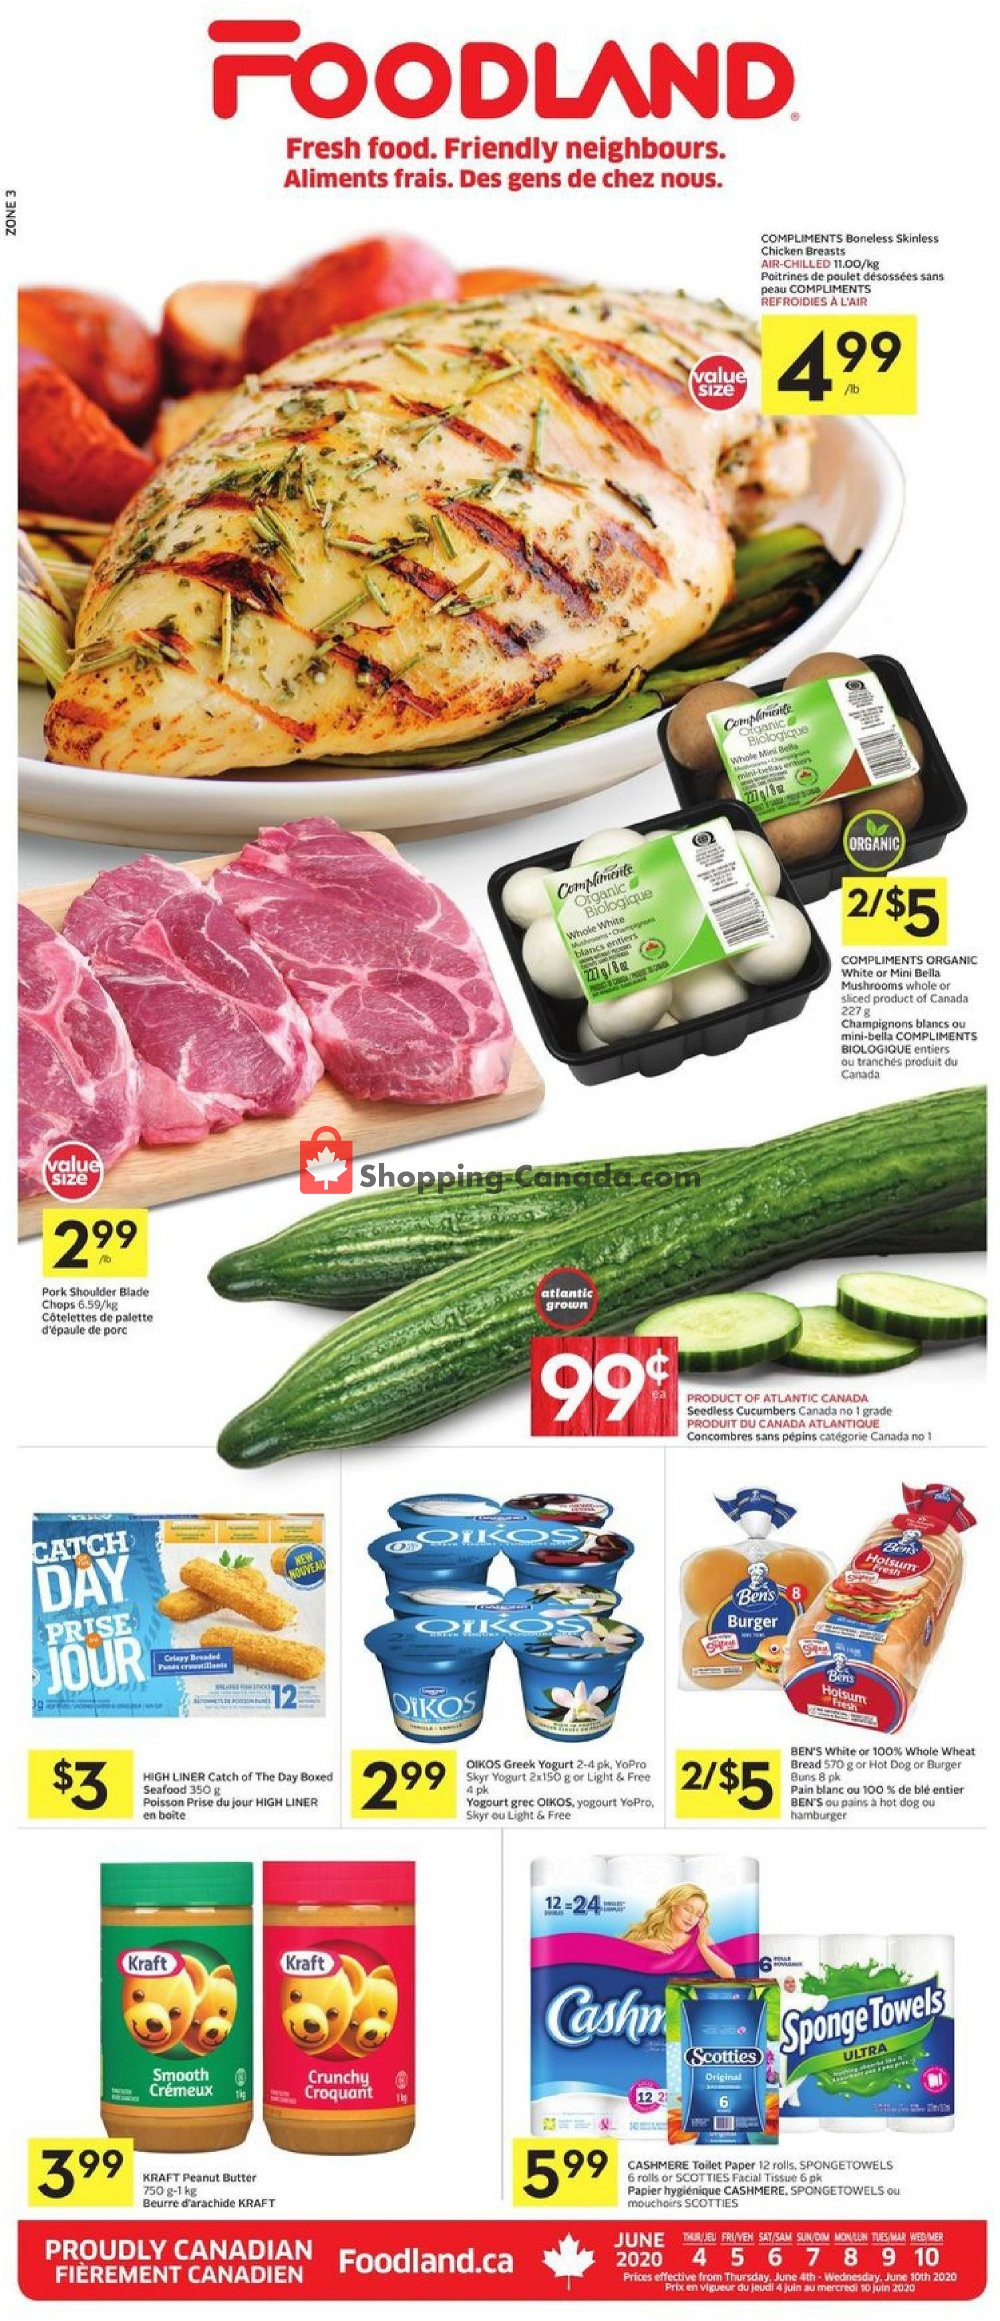 Flyer Foodland Canada - from Thursday June 4, 2020 to Wednesday June 10, 2020